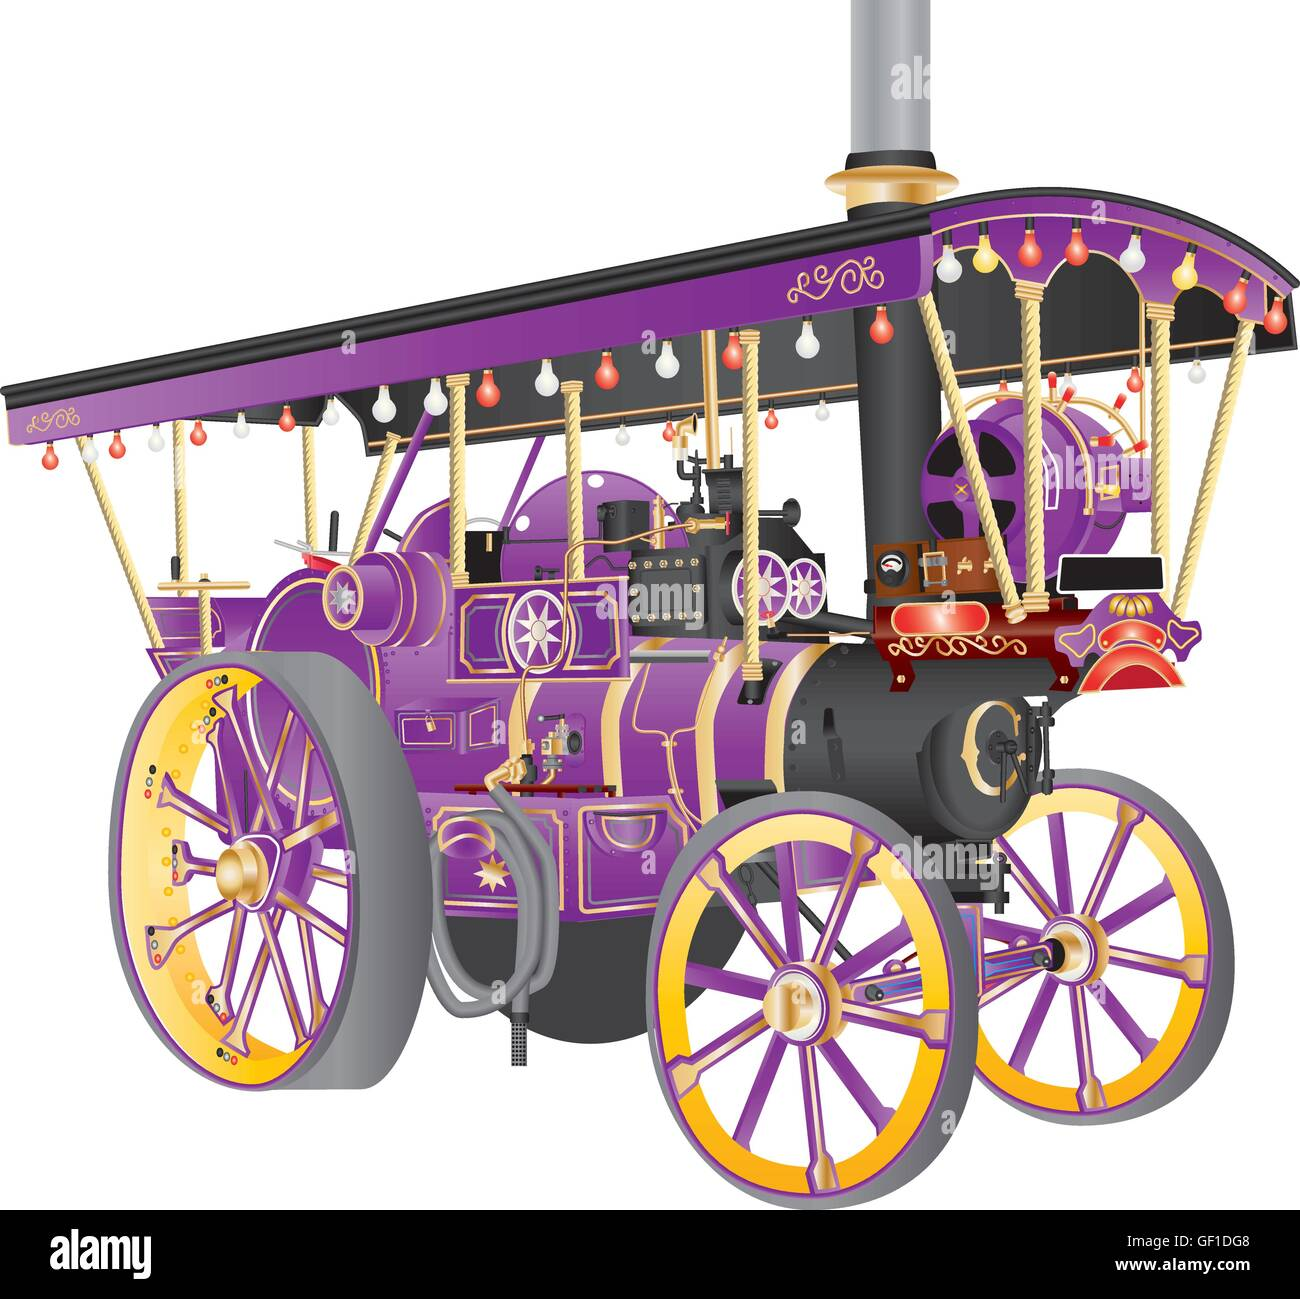 A Detailed illustration of a Richly decorated Vintage Purple and Yellow Steam Traction Engine used on Fairgrounds Stock Vector